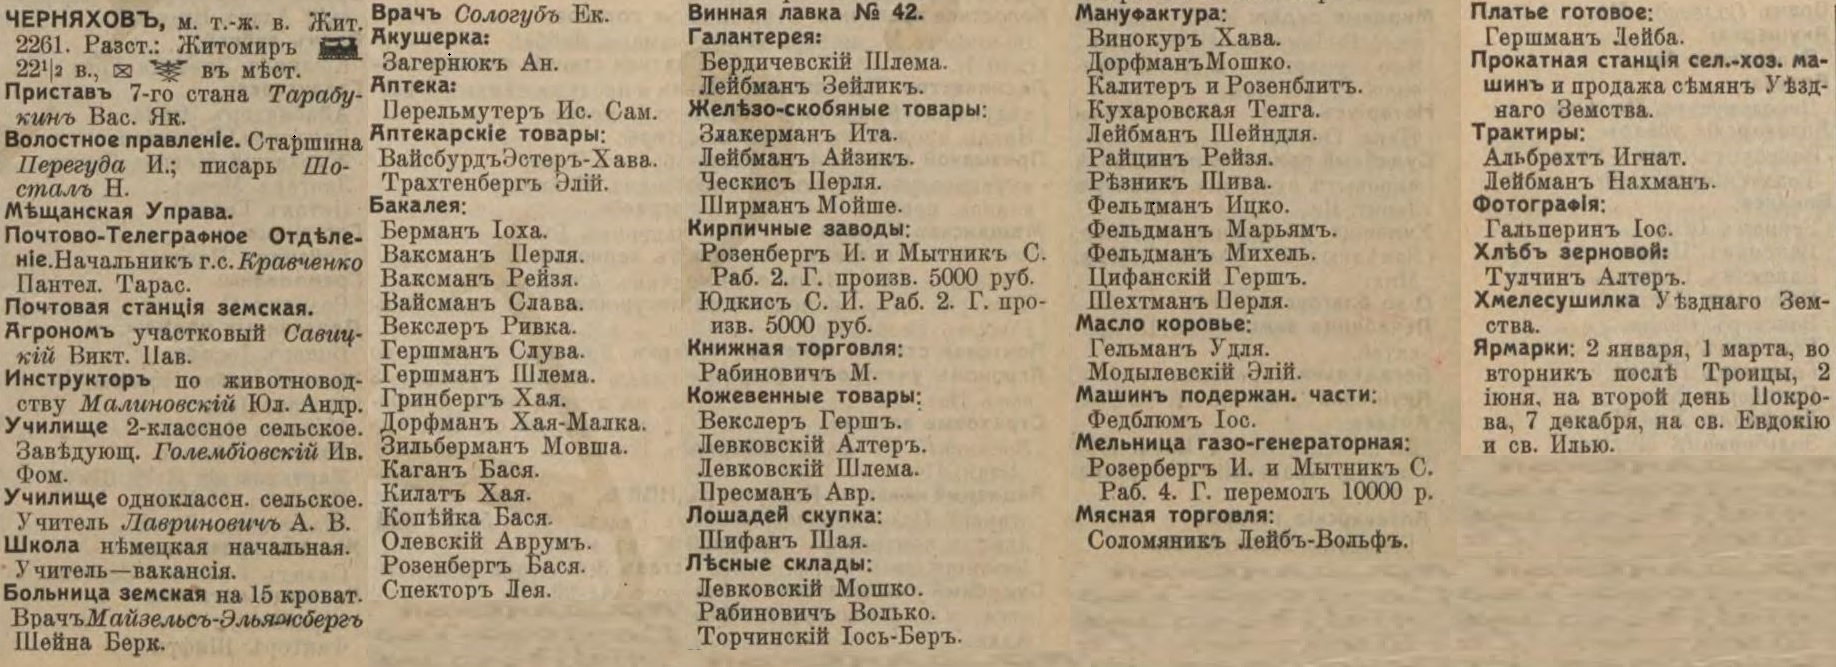 Cherniakhov entrepreneurs list from Russian Empire Business Directories by 1913